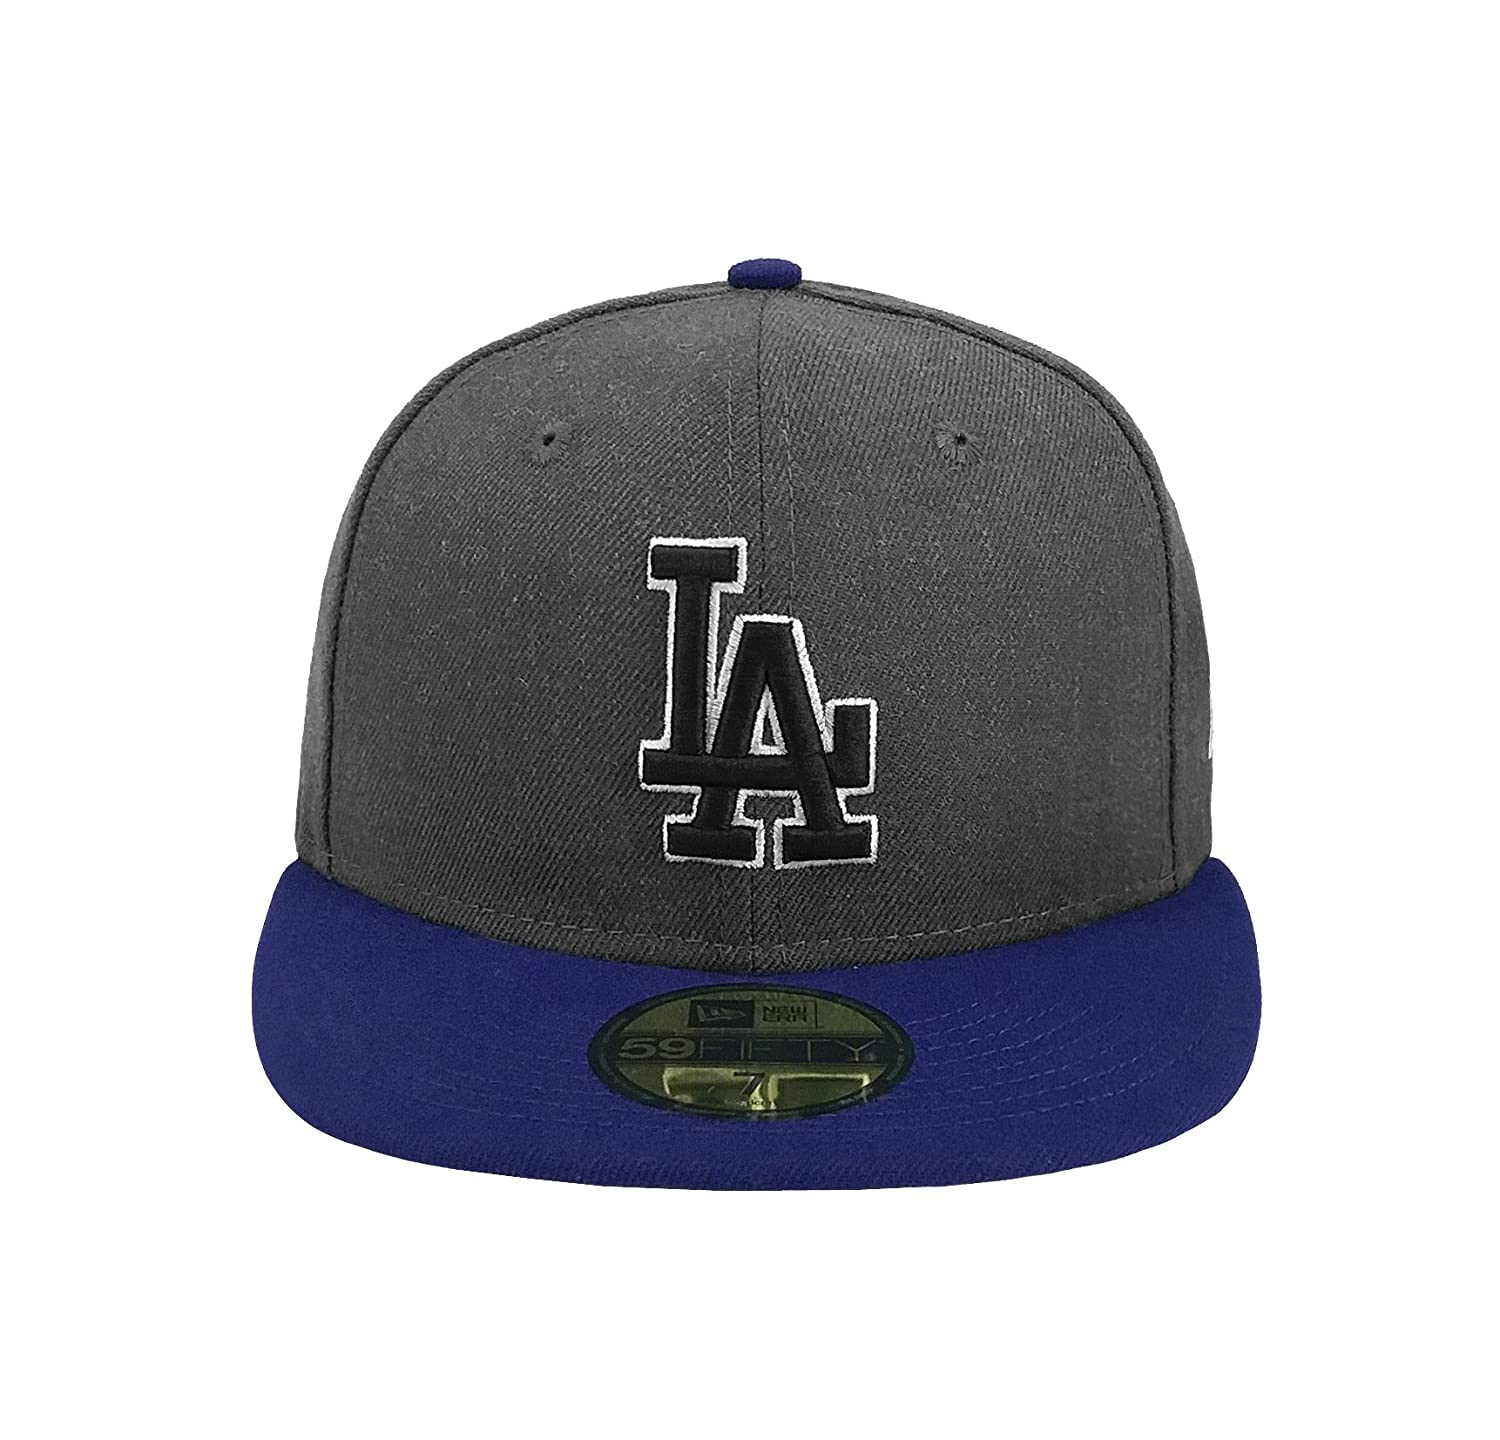 wholesale dealer 12835 b3ca4 New Era 59Fifty Hat MLB Los Angeles Dodgers Shader Melt 2 Charcoal Royal  Blue Cap at Amazon Men s Clothing store